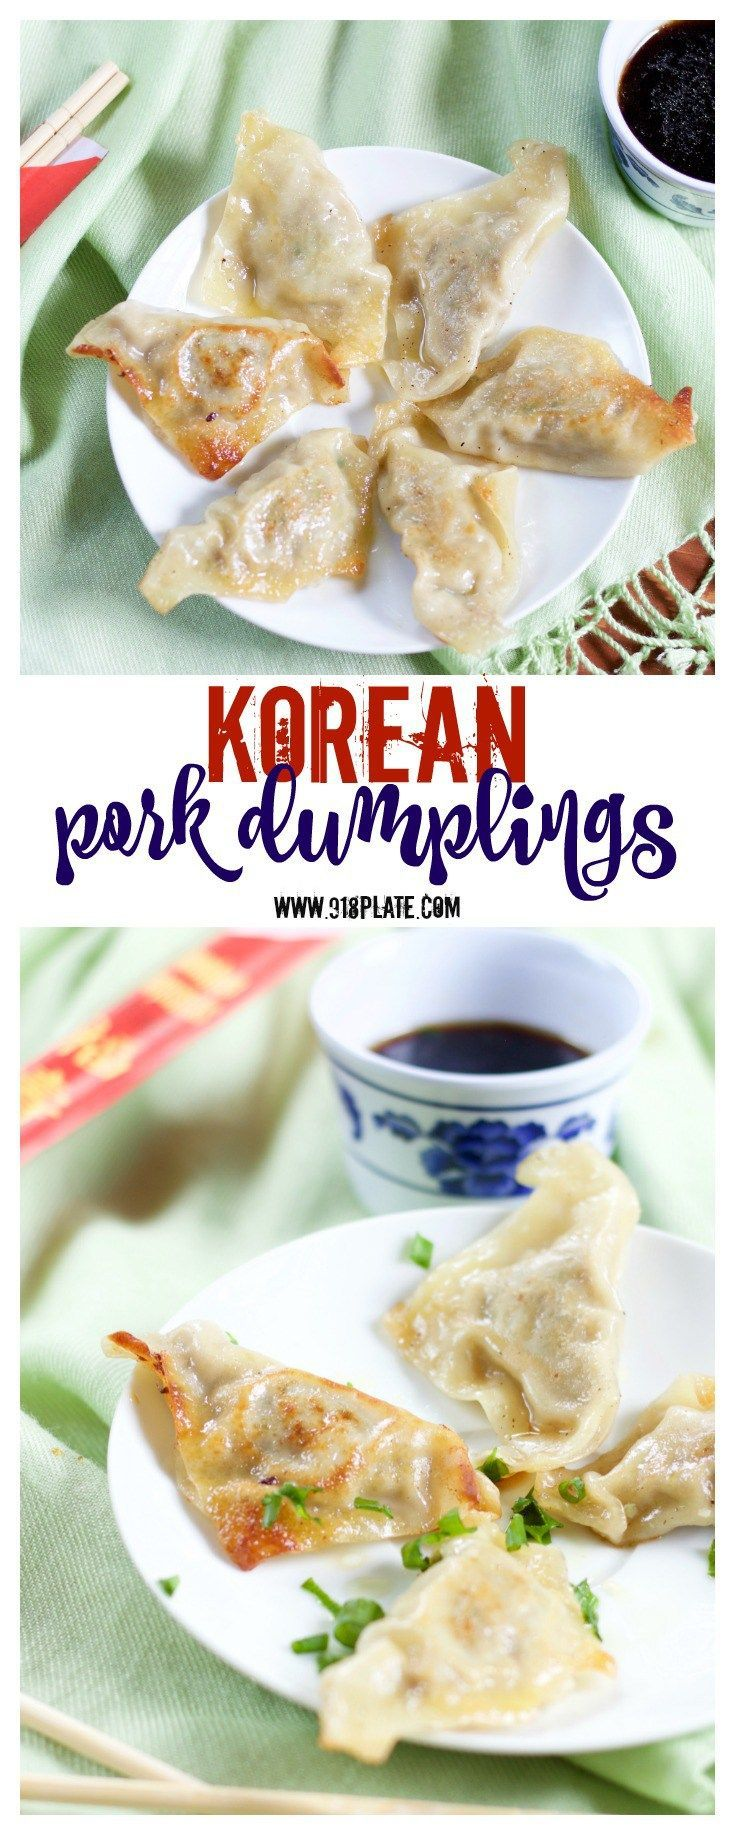 Mandu – Korean Pork Dumplings [DF]